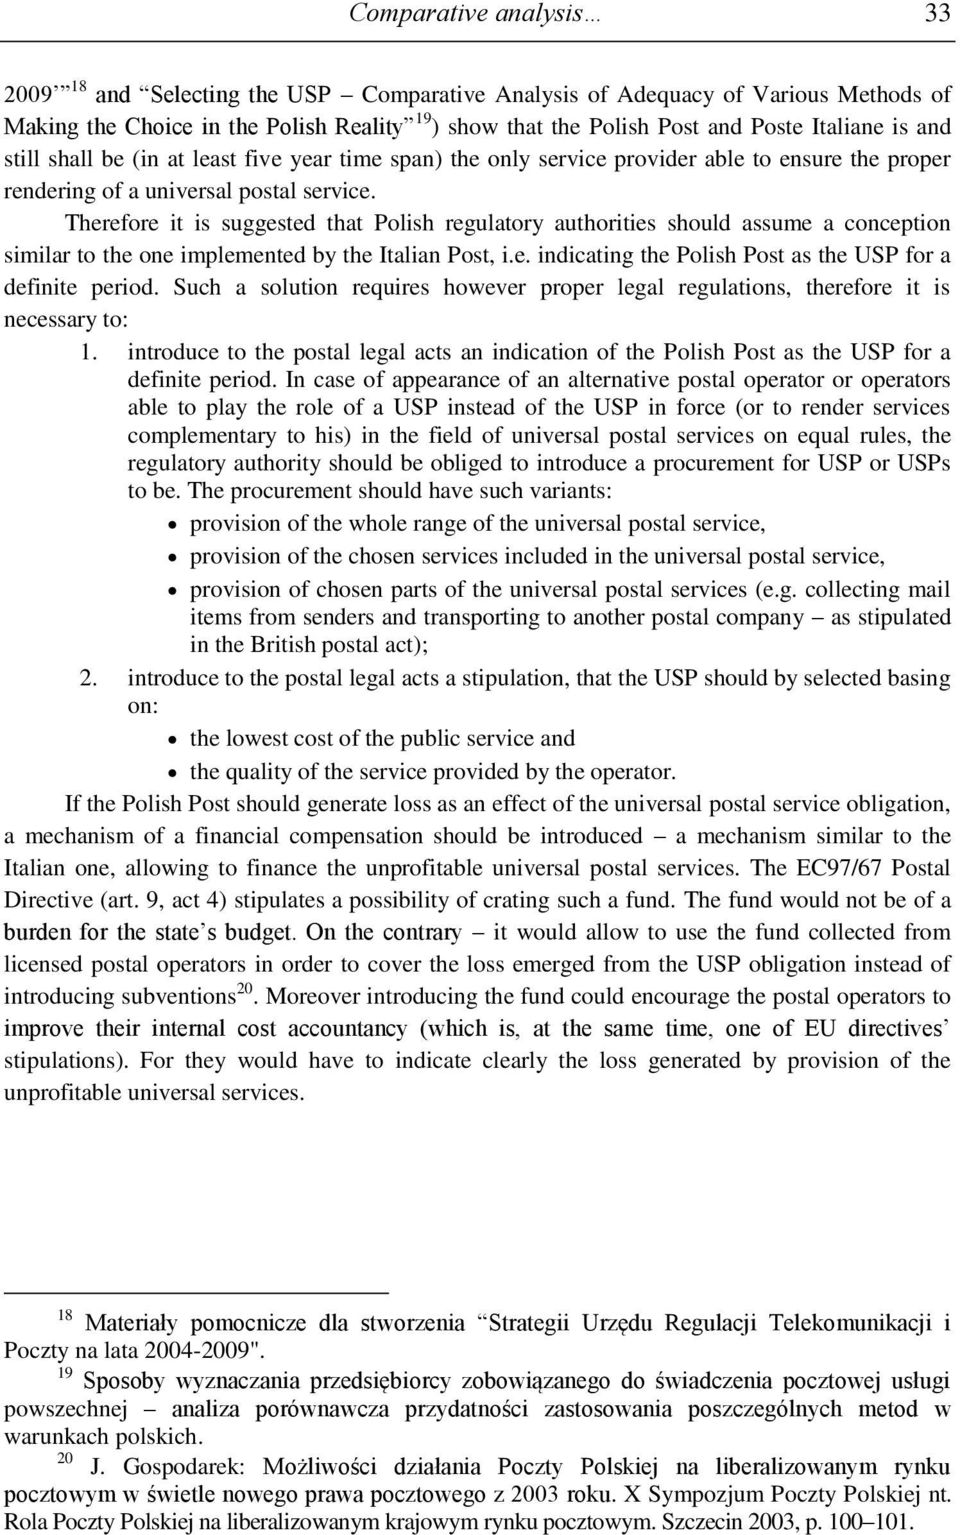 Therefore it is suggested that Polish regulatory authorities should assume a conception similar to the one implemented by the Italian Post, i.e. indicating the Polish Post as the USP for a definite period.